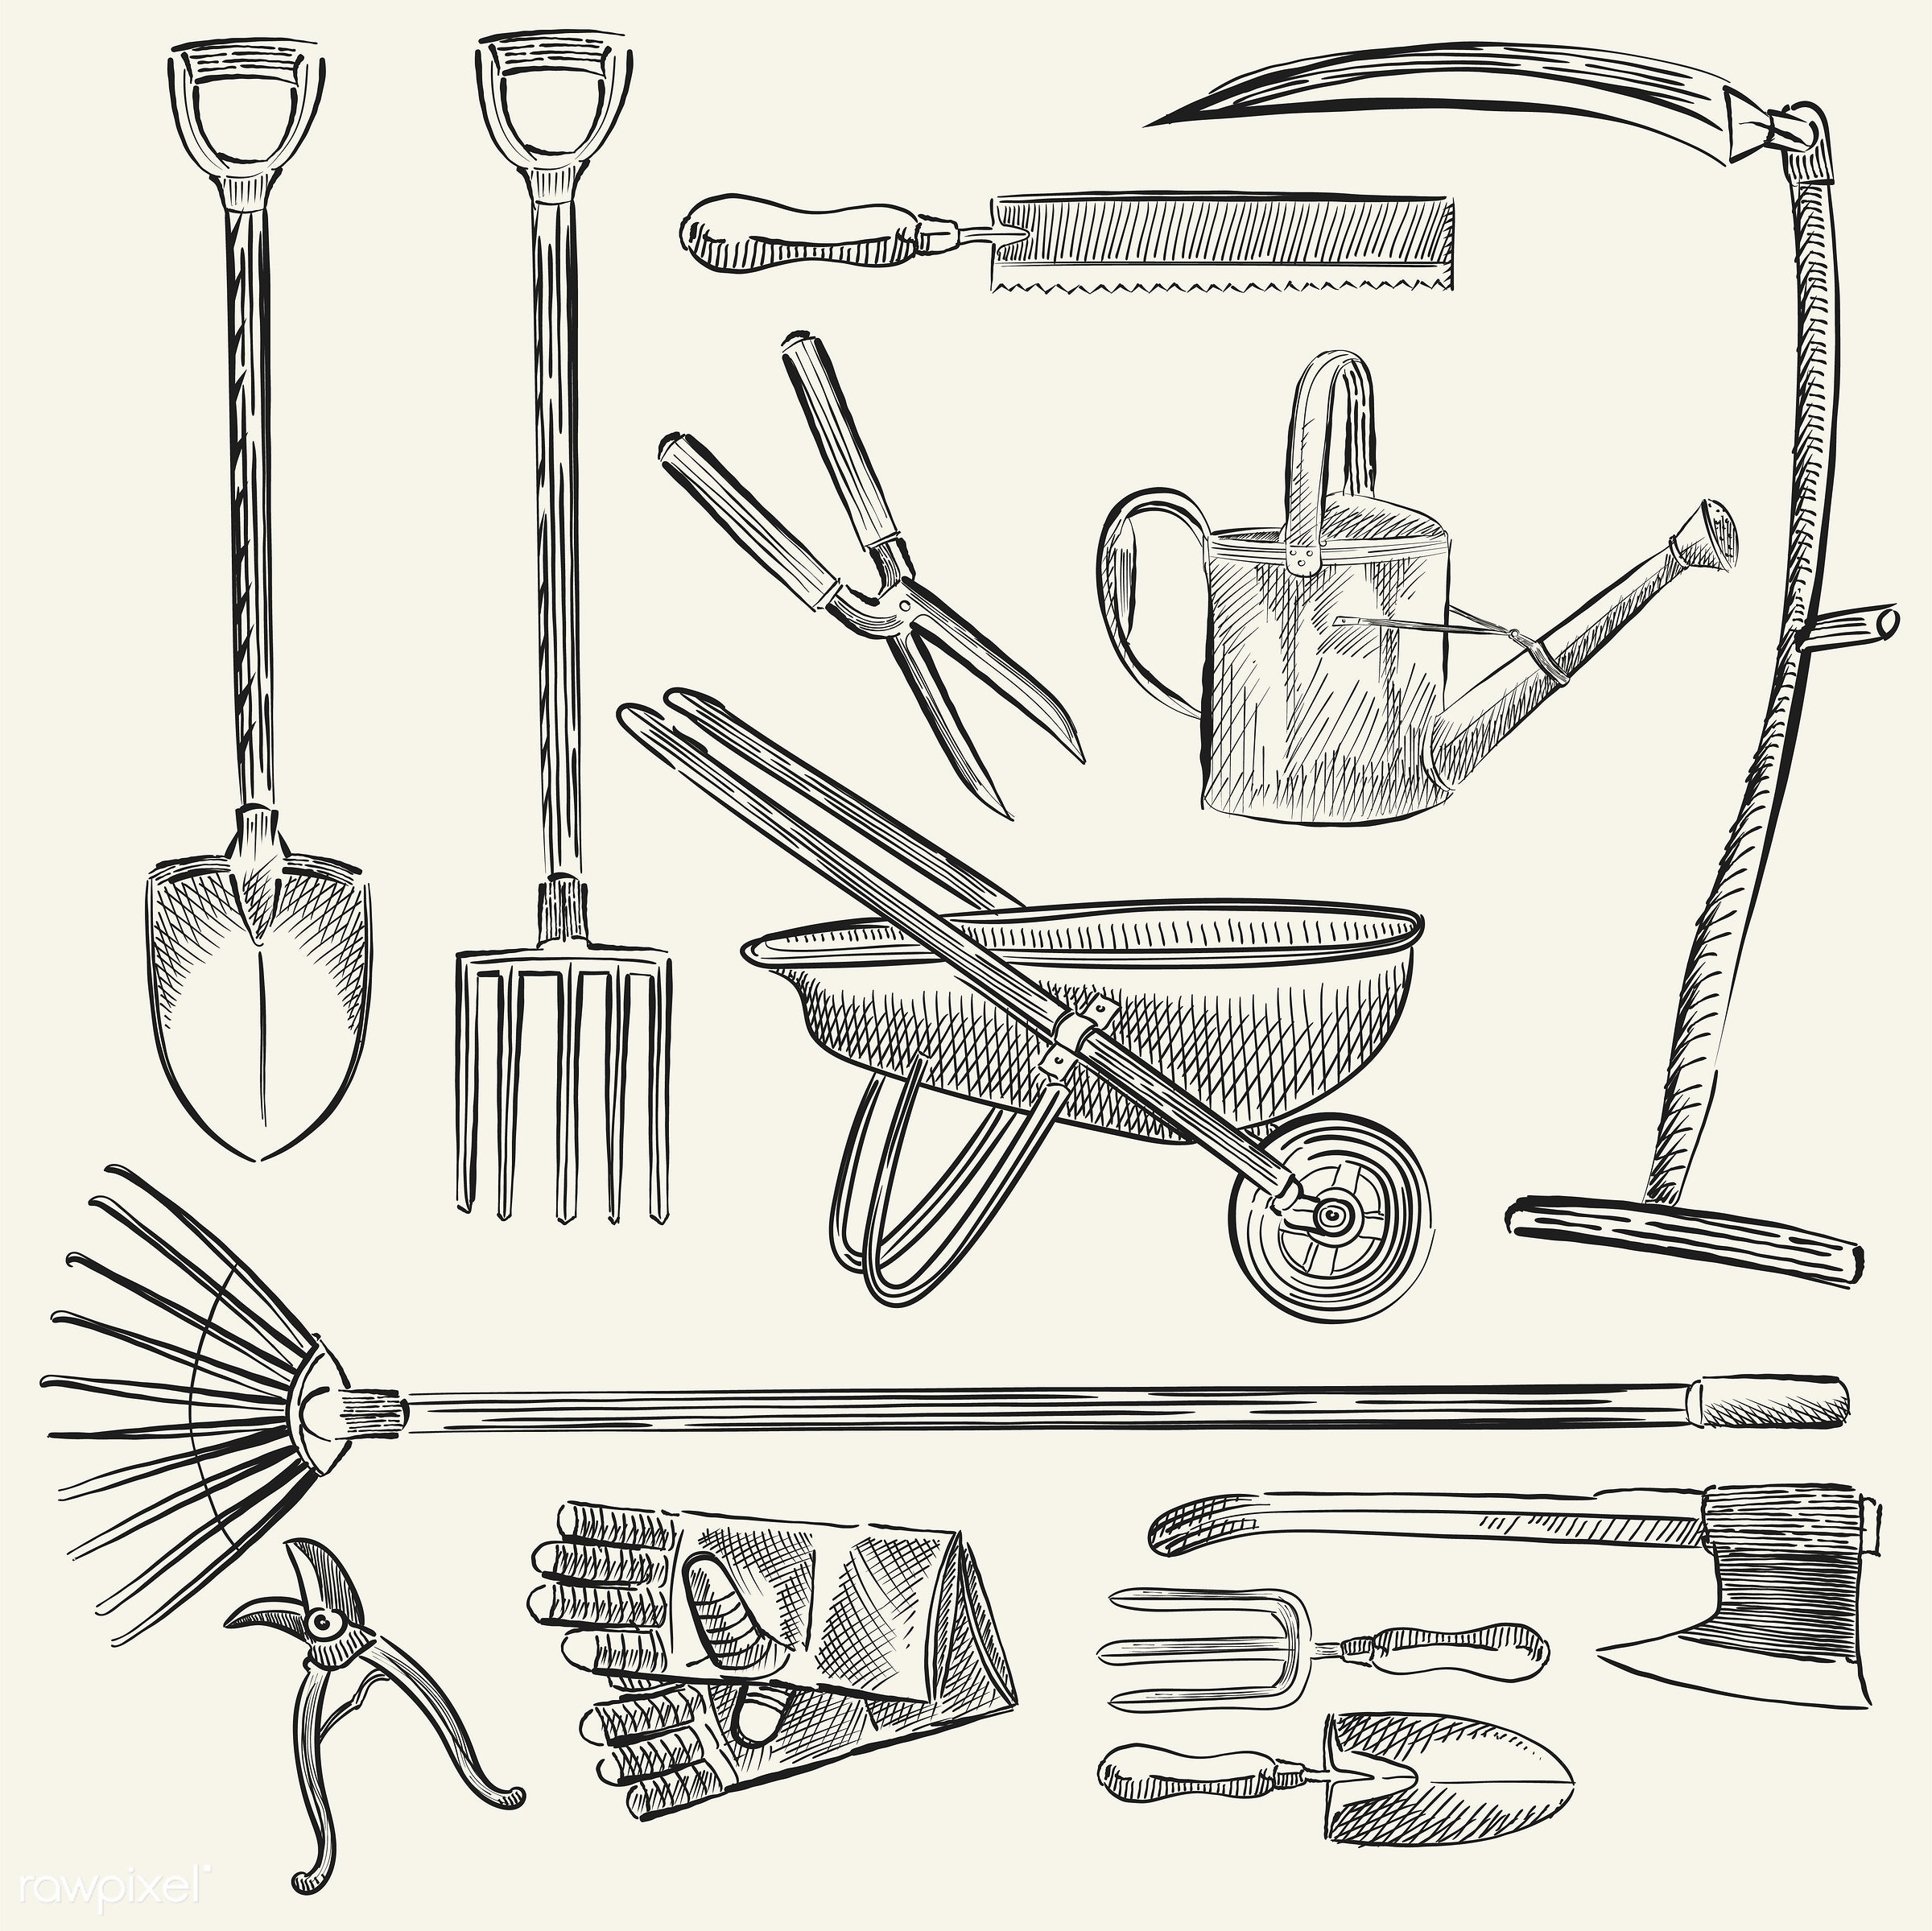 Illustration of a set of gardening tools - garden, vector, antique, axe, black, collection, design, drawing, equipment, fork...